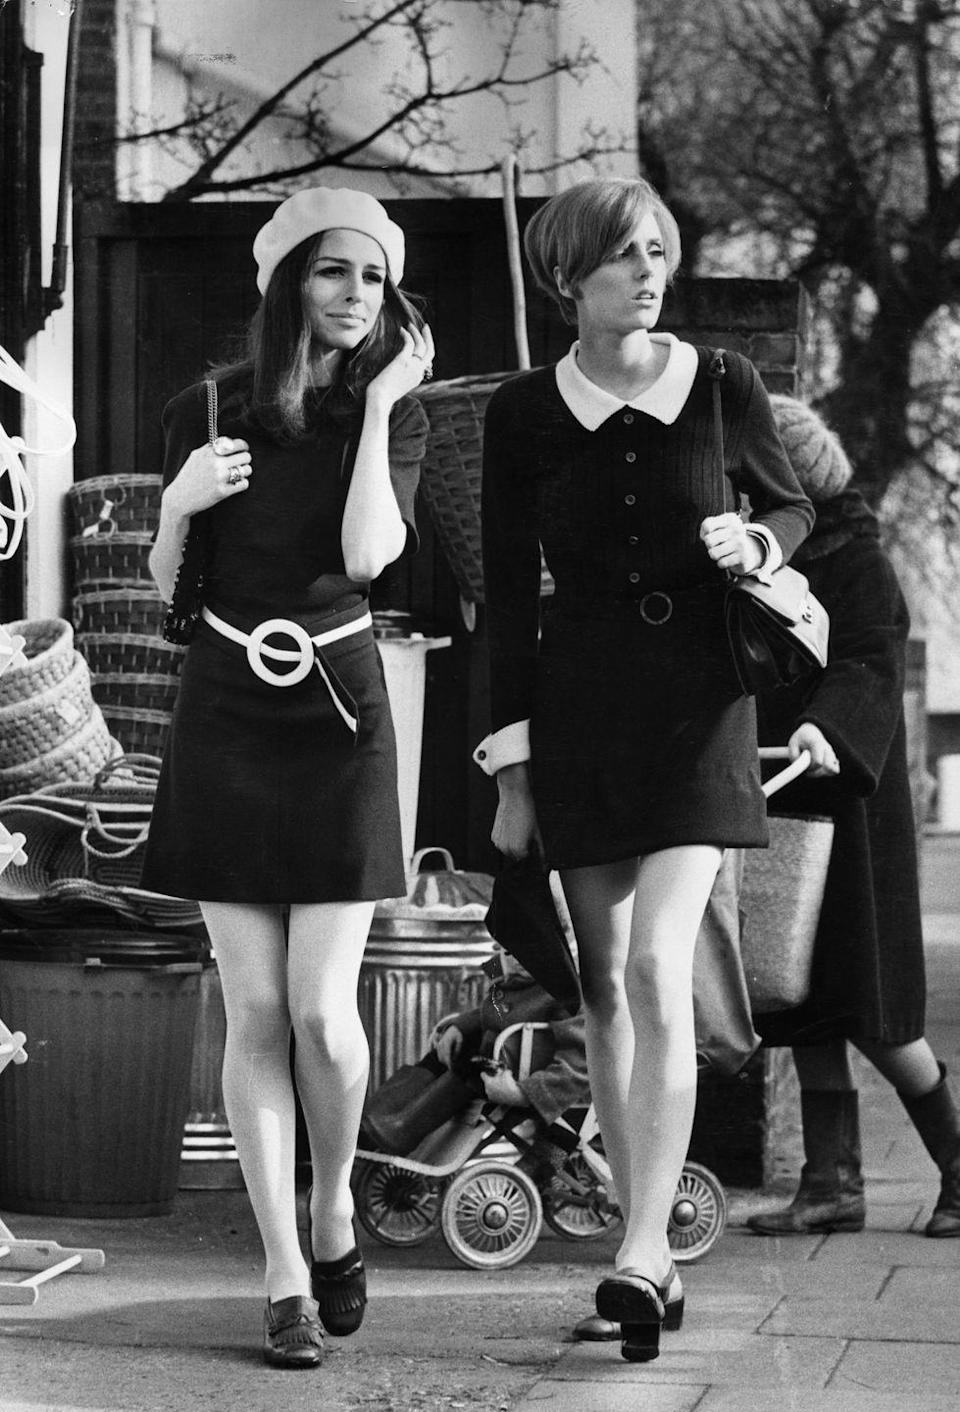 <p>Once again, hemlines were on the rise. Throughout the '60s and by 1965, miniskirt mania was at its peak. The mod look wasn't complete without a chunky low heel or a knee-high boot and perhaps a beret, for good measure. </p>